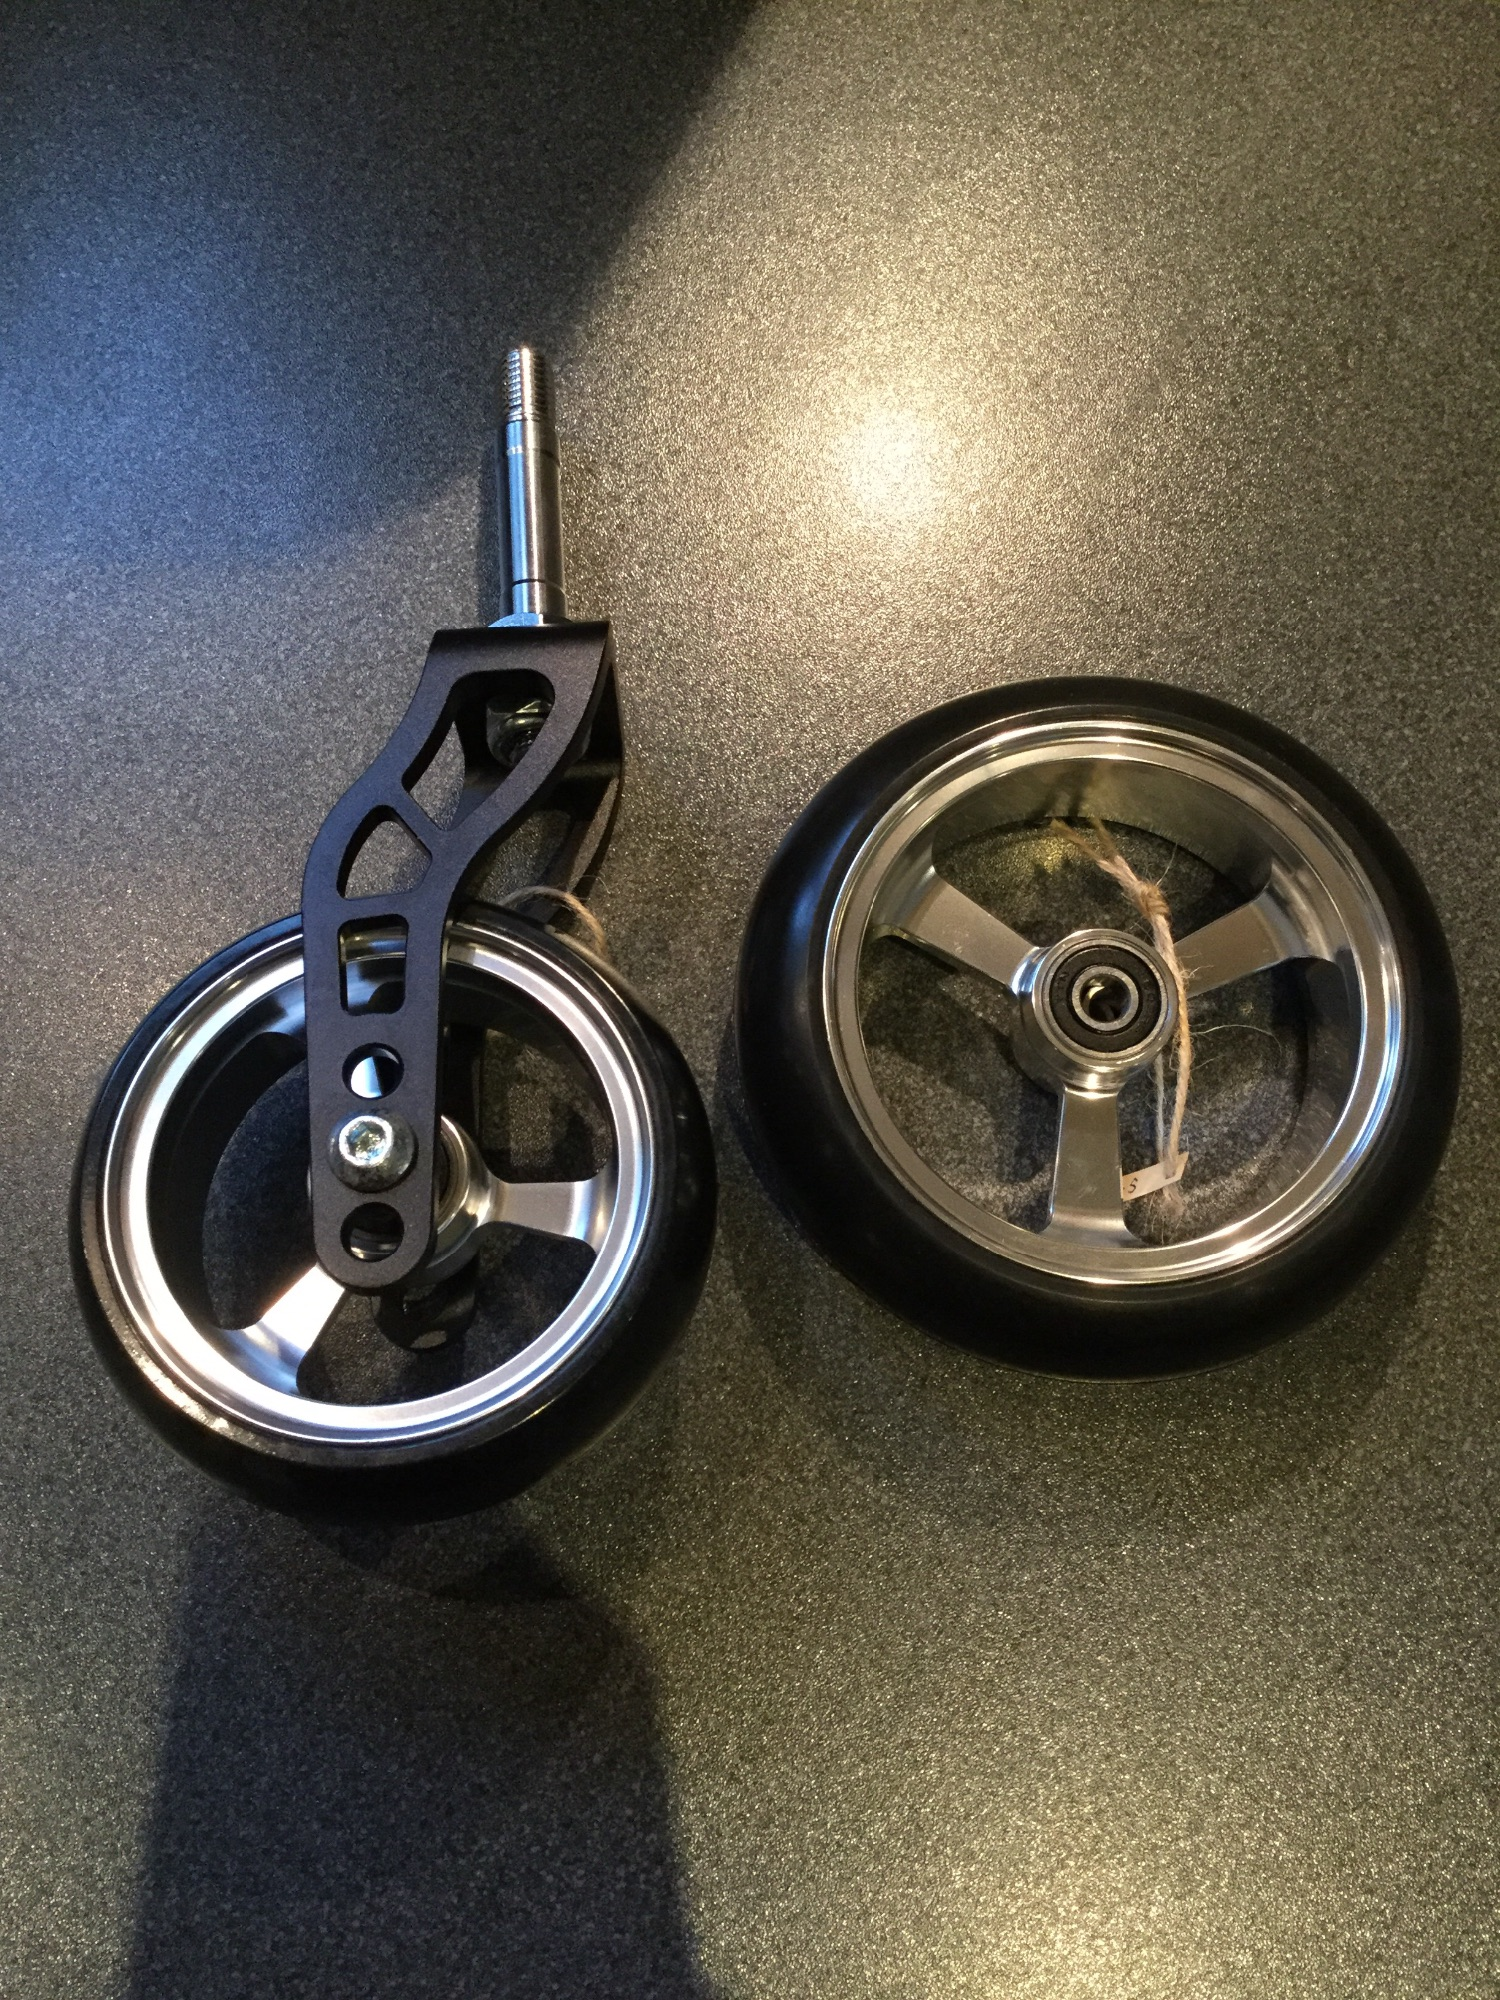 Breaking news! I have some beautiful wheels that have just arrived from Taiwan. These are high quality wheels, more soon.